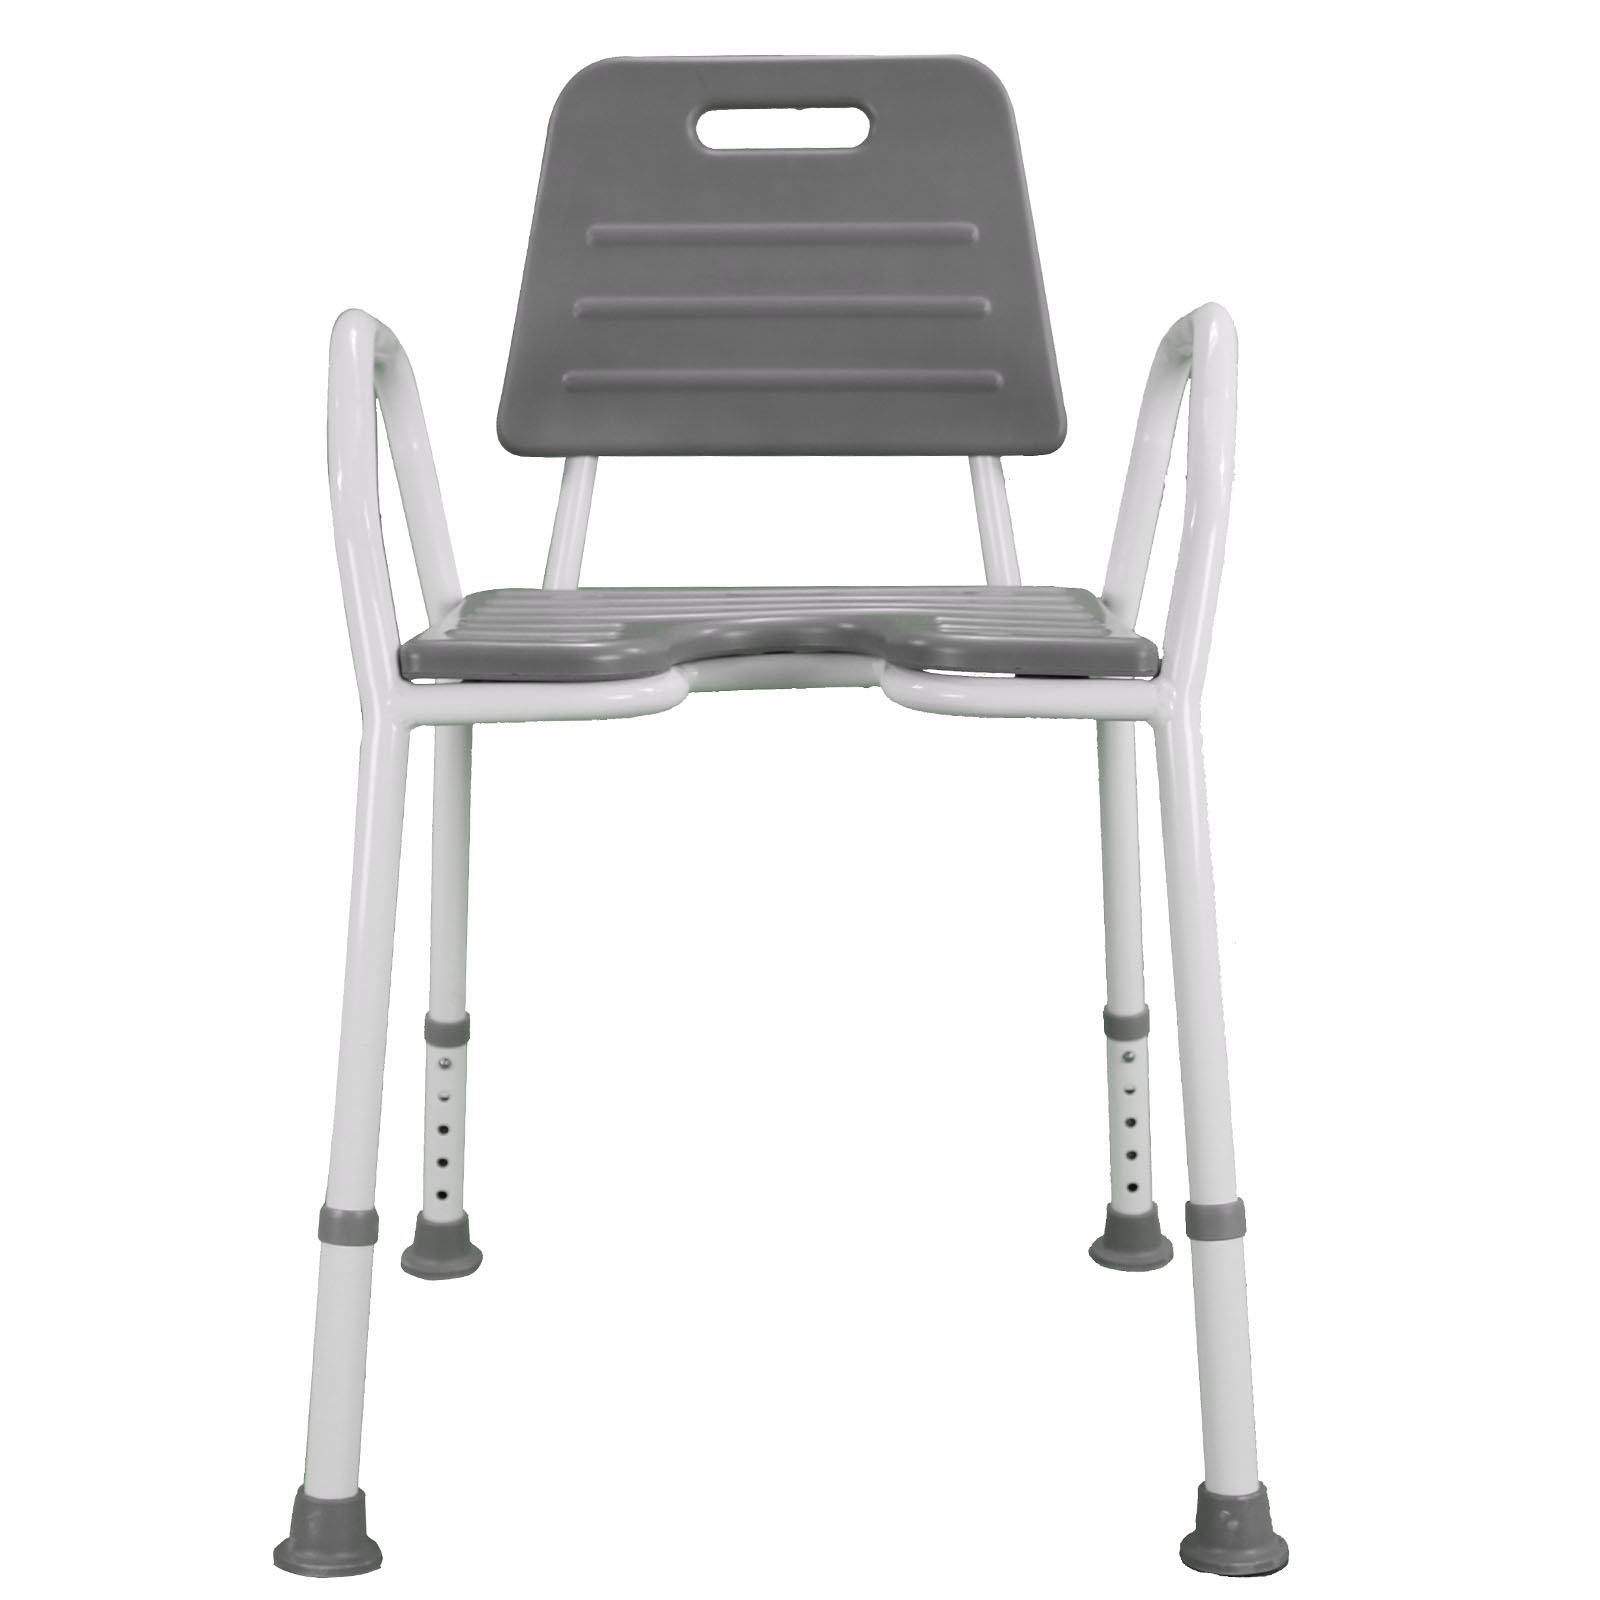 Adjustable Shower Chair Shower Chair Seat Stool Adjustable Height Soft Backrest